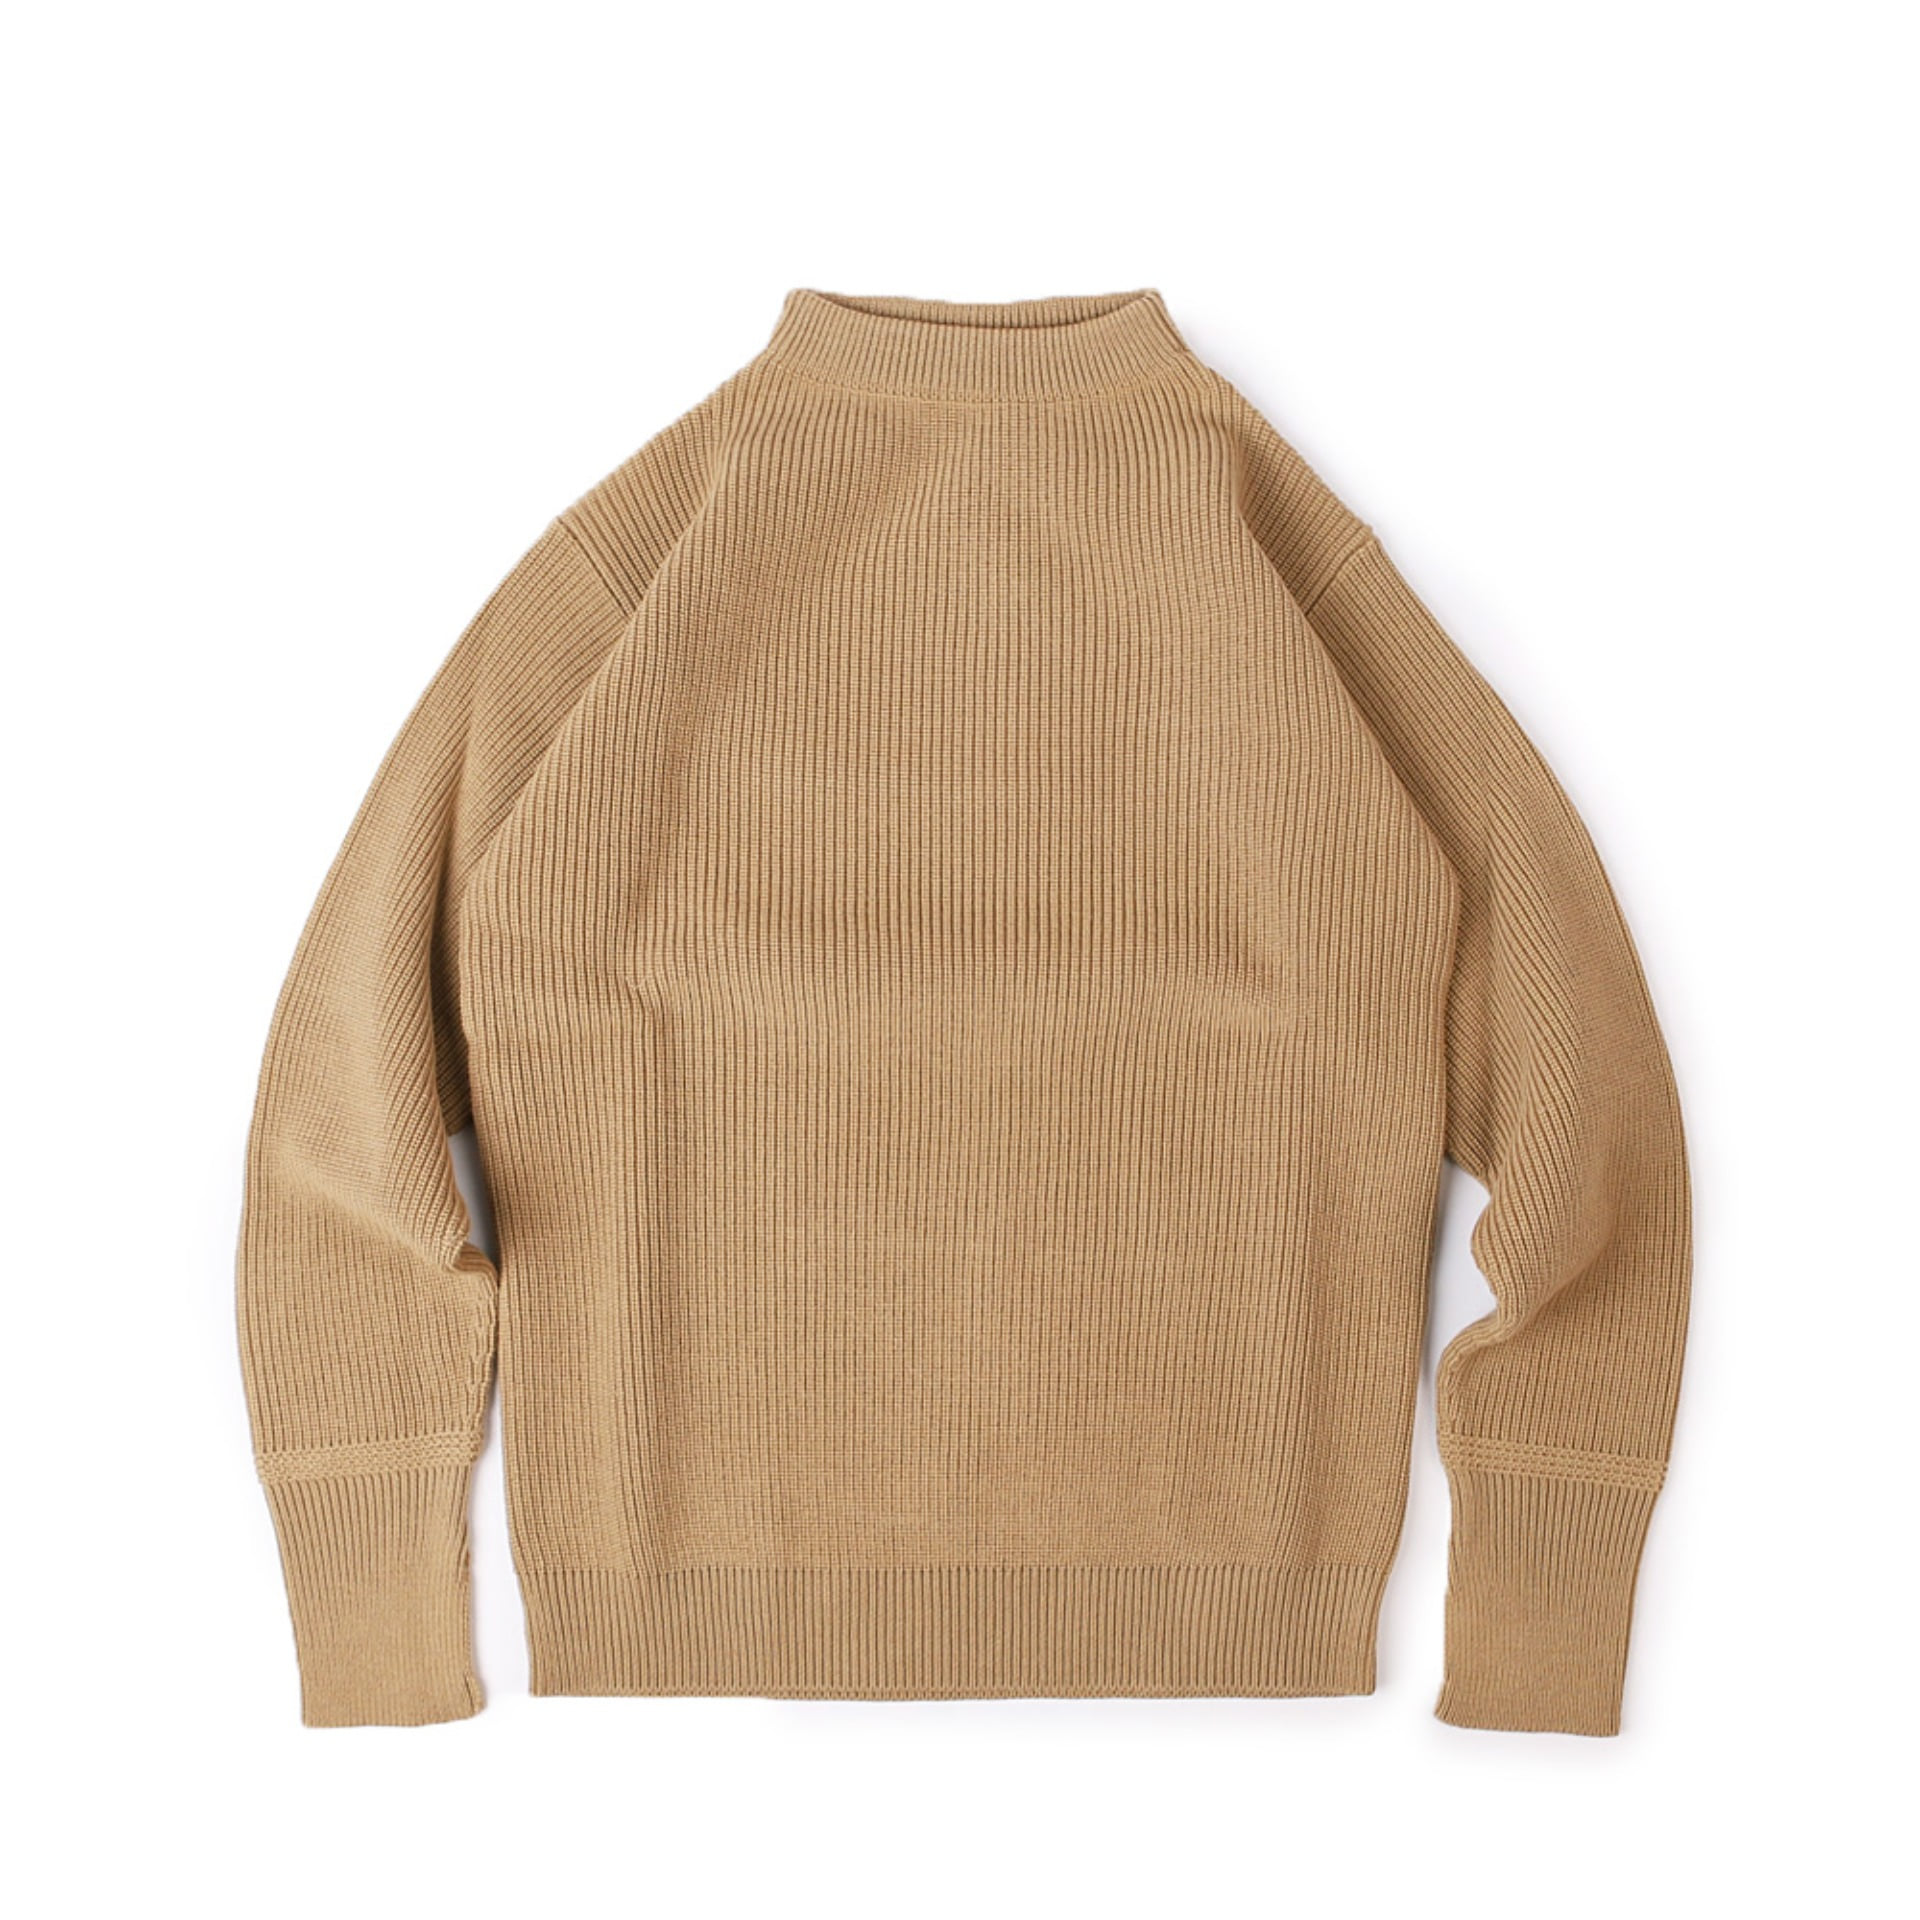 SAILOR CREWNECK SWEATER (Beige)